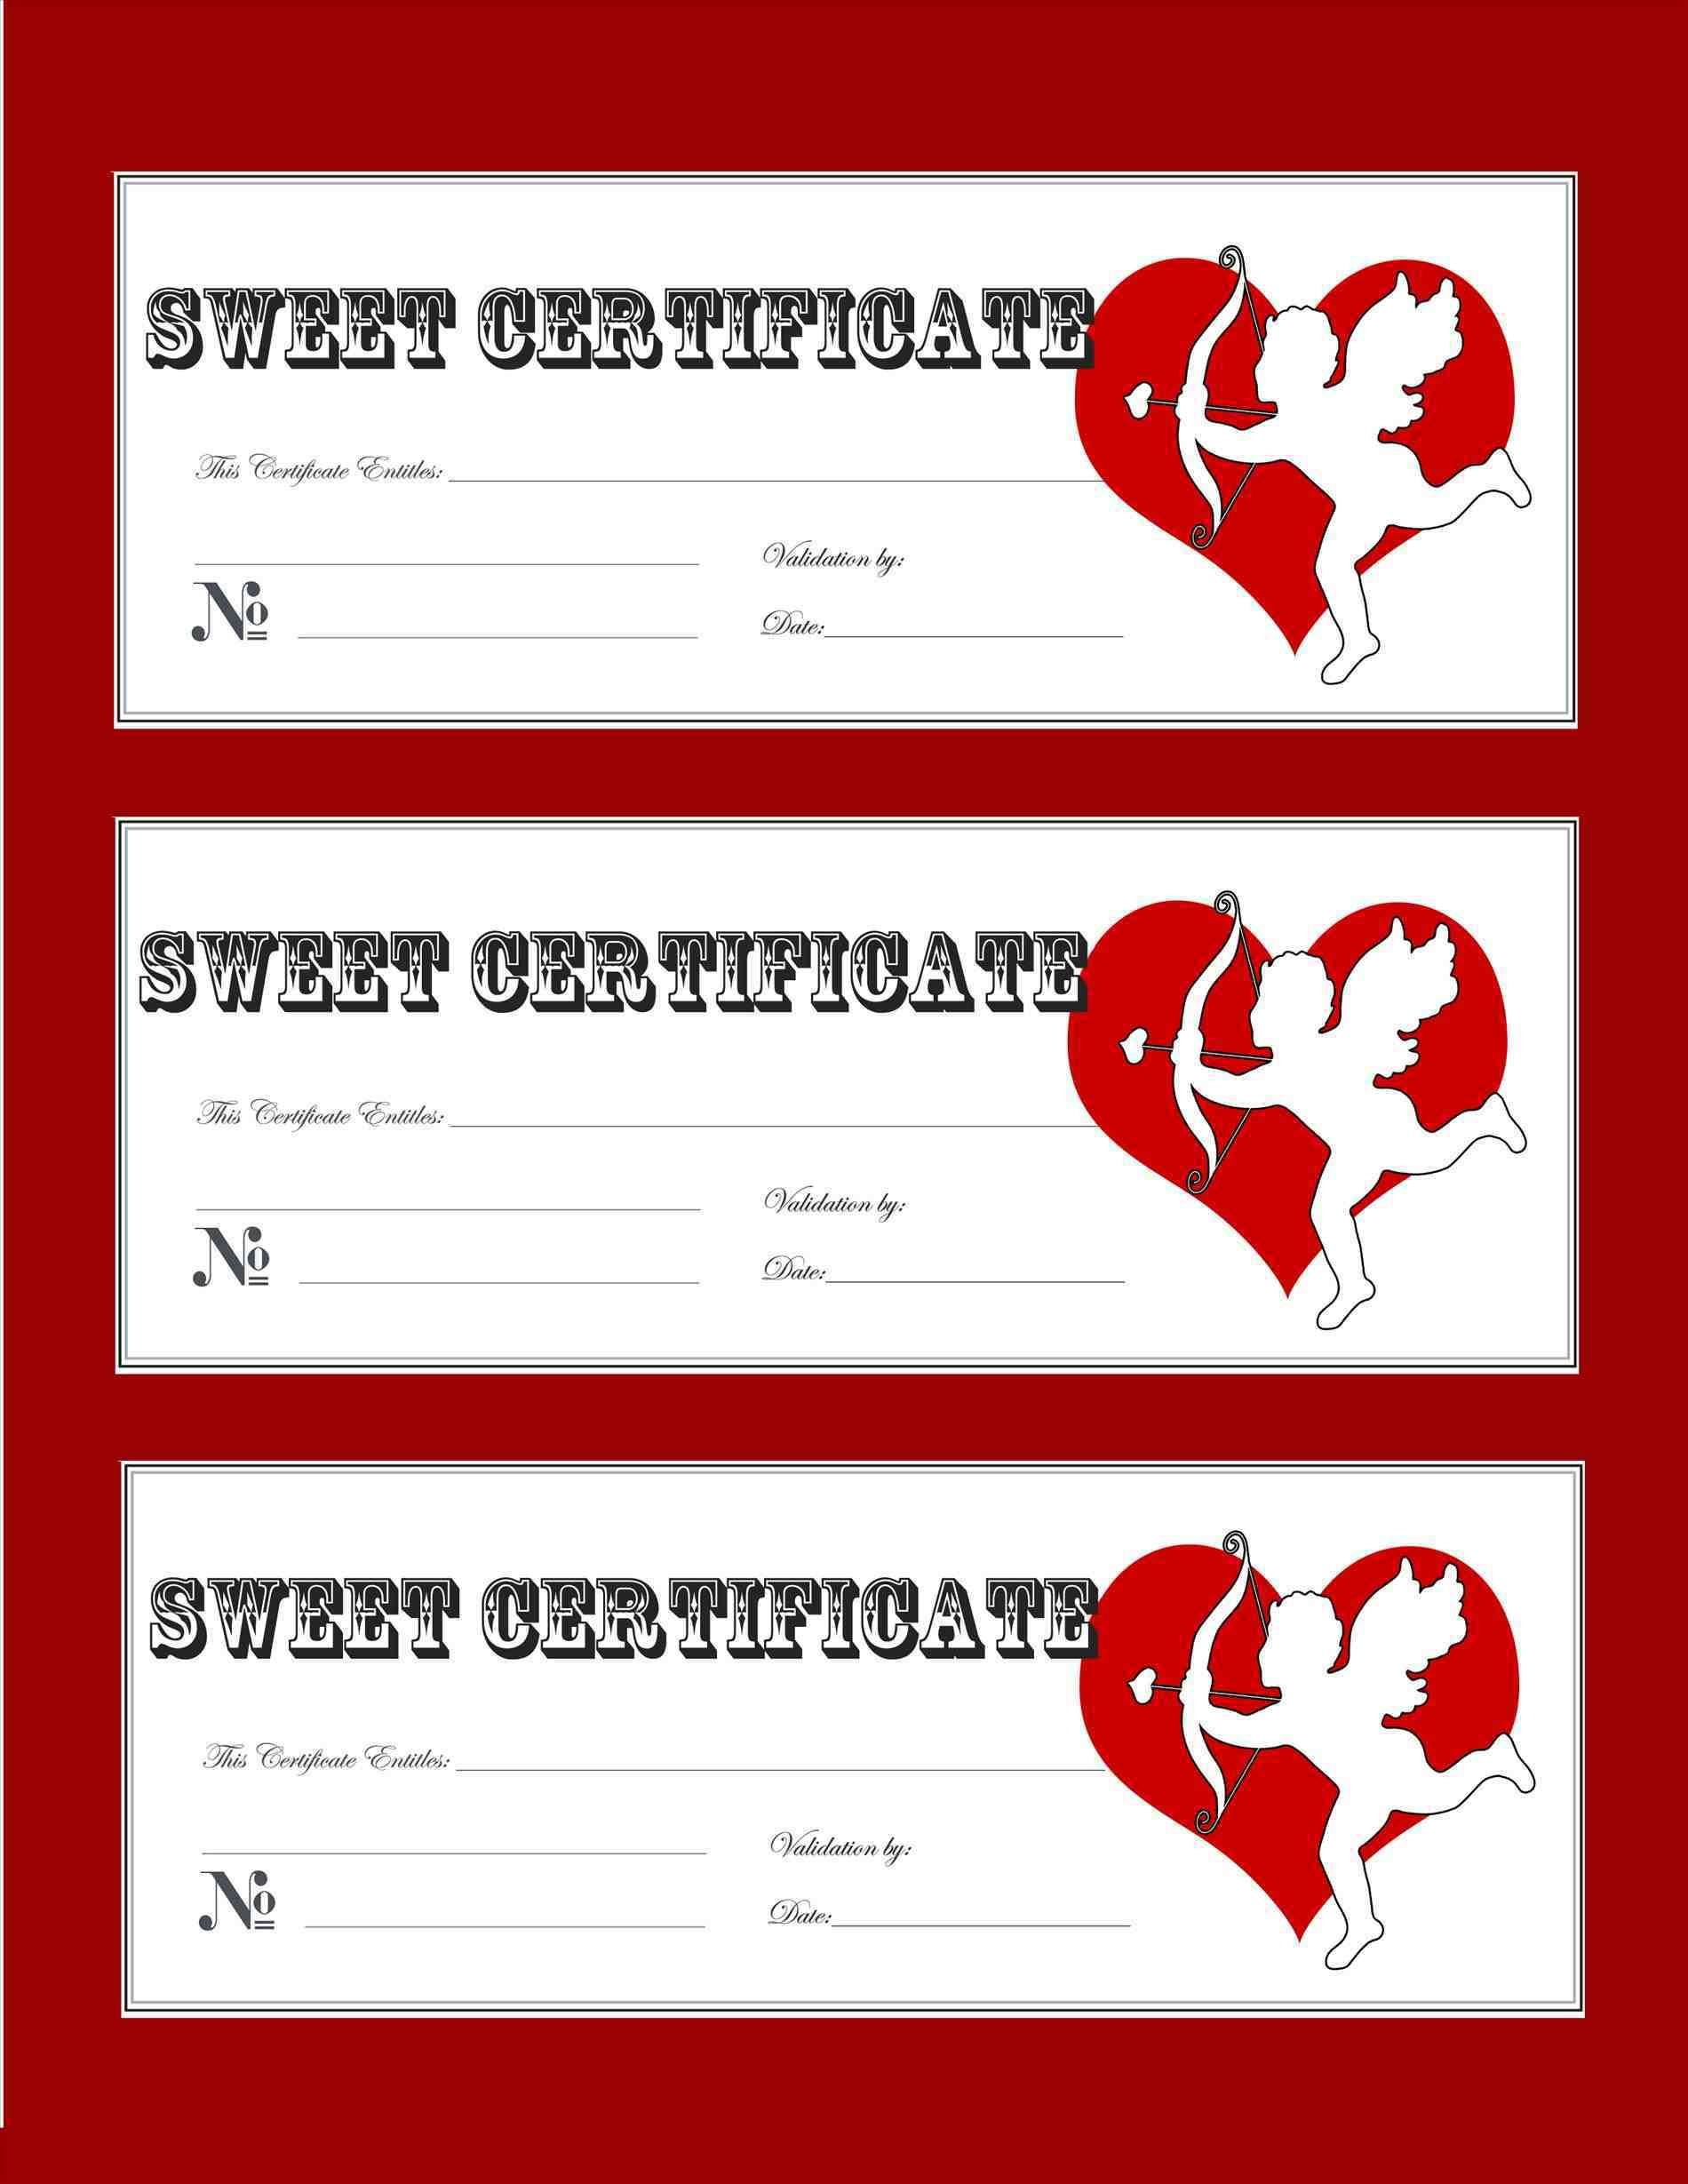 Gift certificate templates christmas templates printable gift tags gift certificate templates christmas templates printable gift tags cards crafts openoffice certificate template image collections openoffice yelopaper